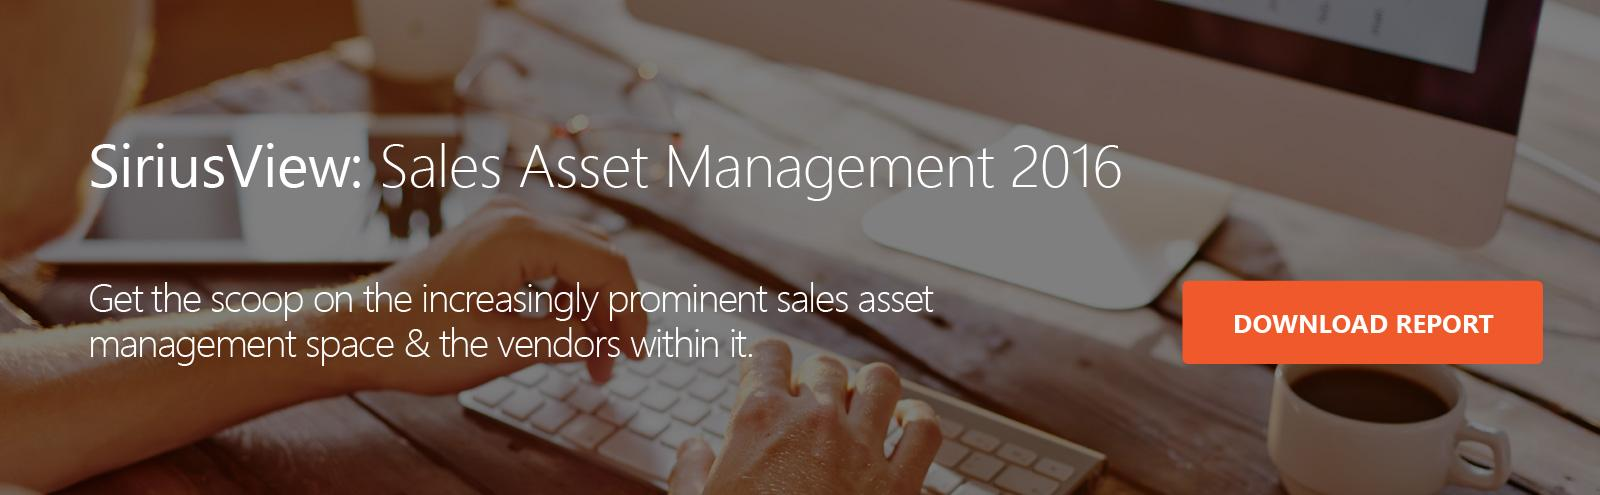 Sales Asset Management 2016